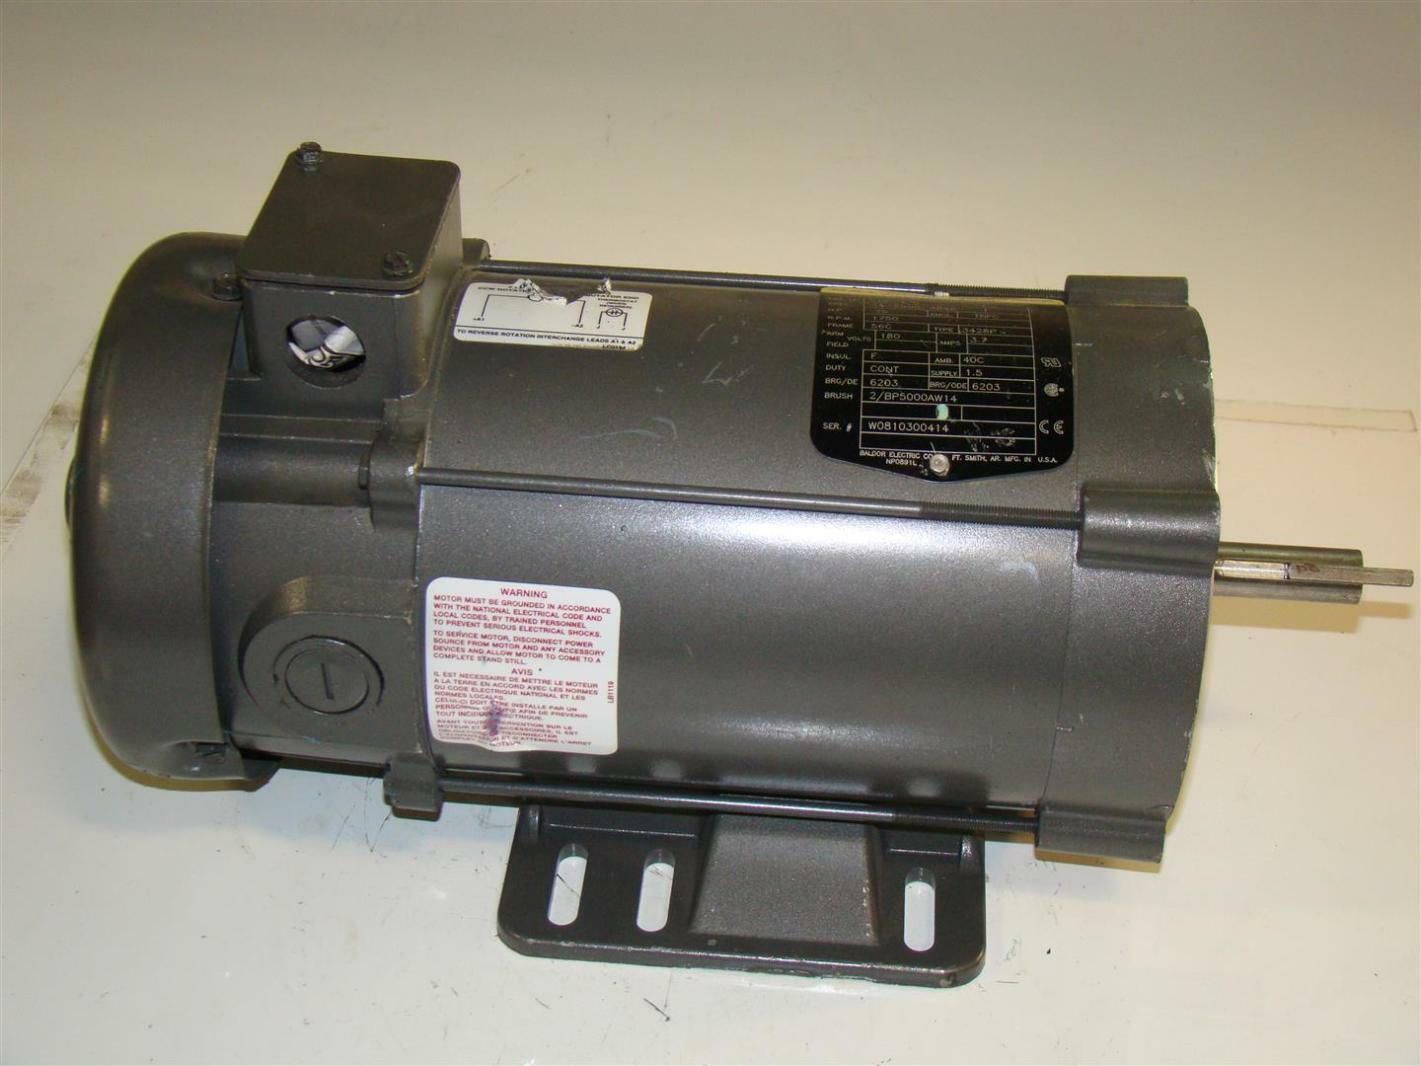 Baldor reliancer dc electric motor 75hp 1750rpm 180v cdp3436 for Baldor industrial motor parts